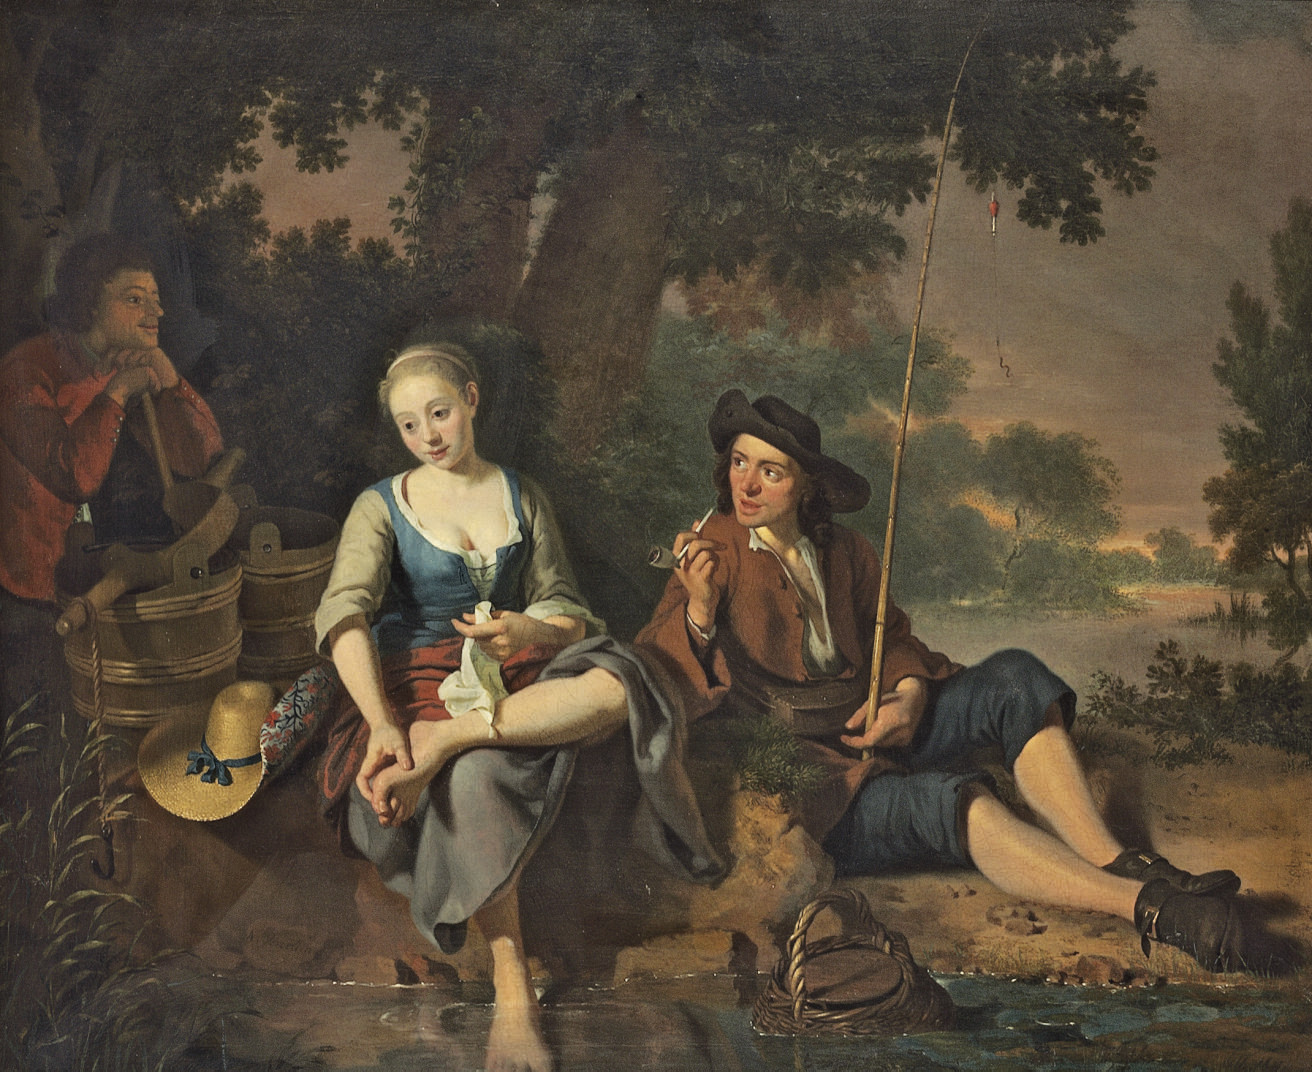 A fisherman and a milkmaid resting on a river bank